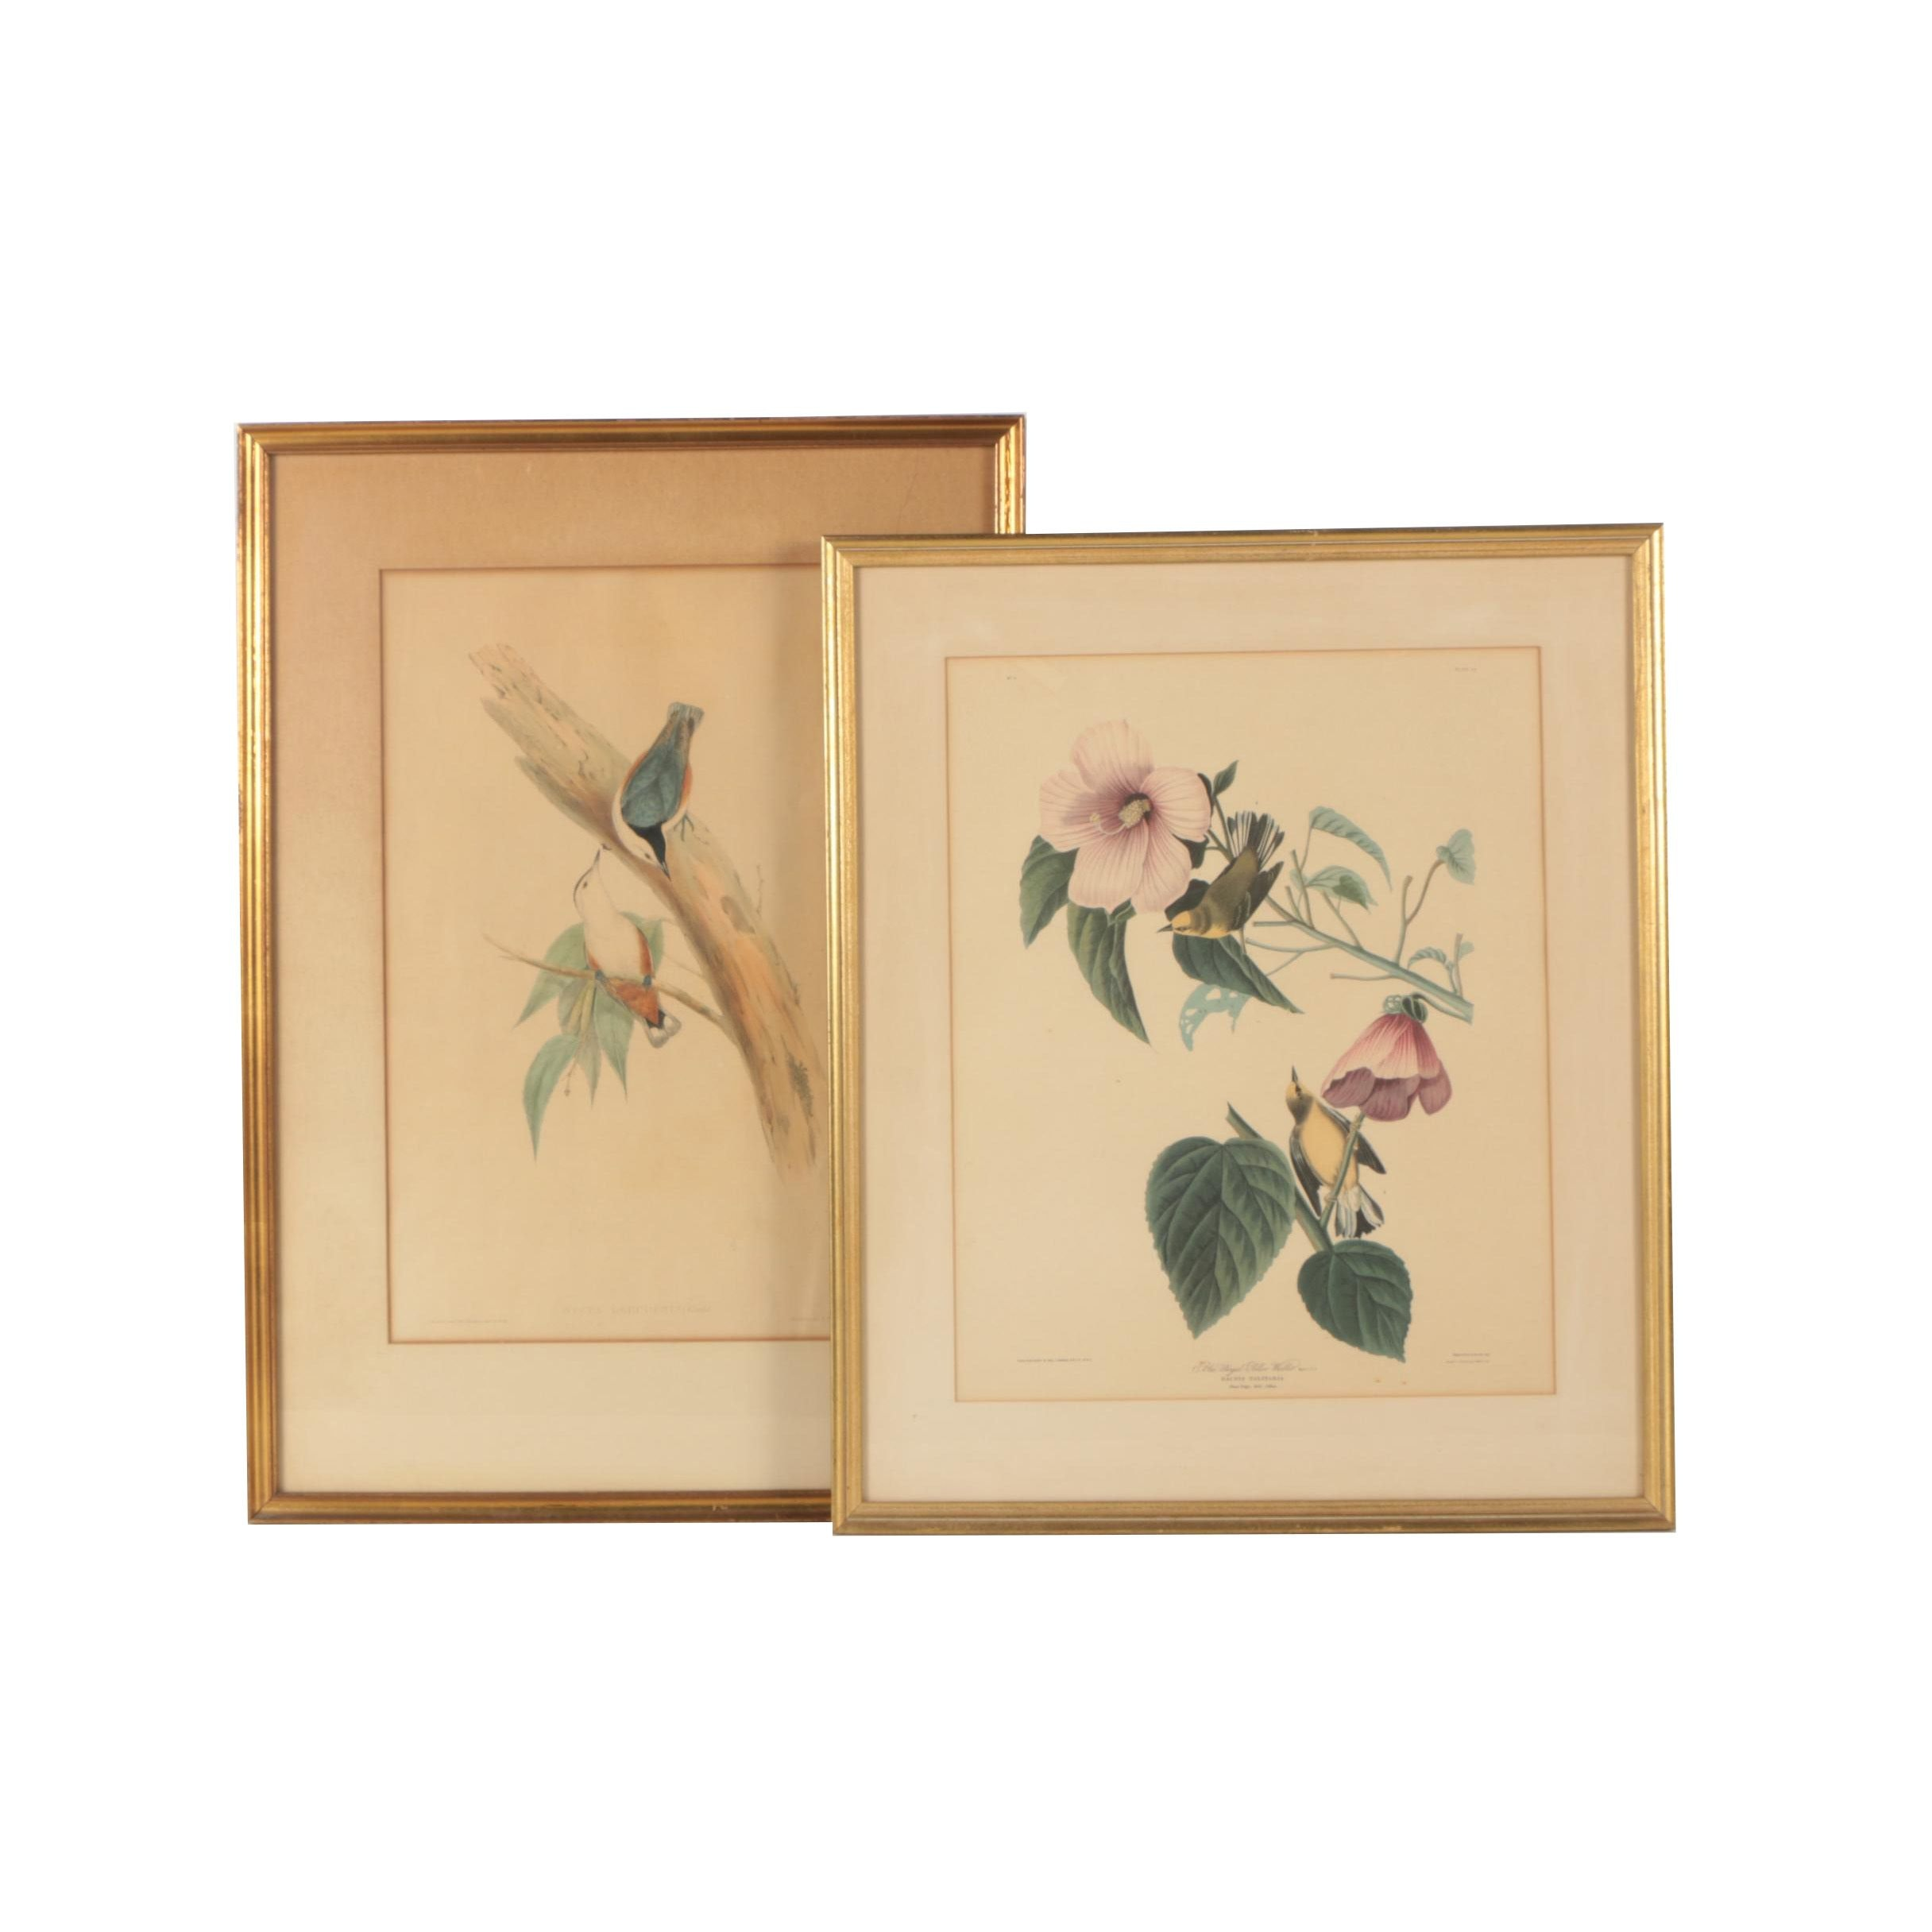 Offset Lithograph After Audubon and Lithograph After Gould